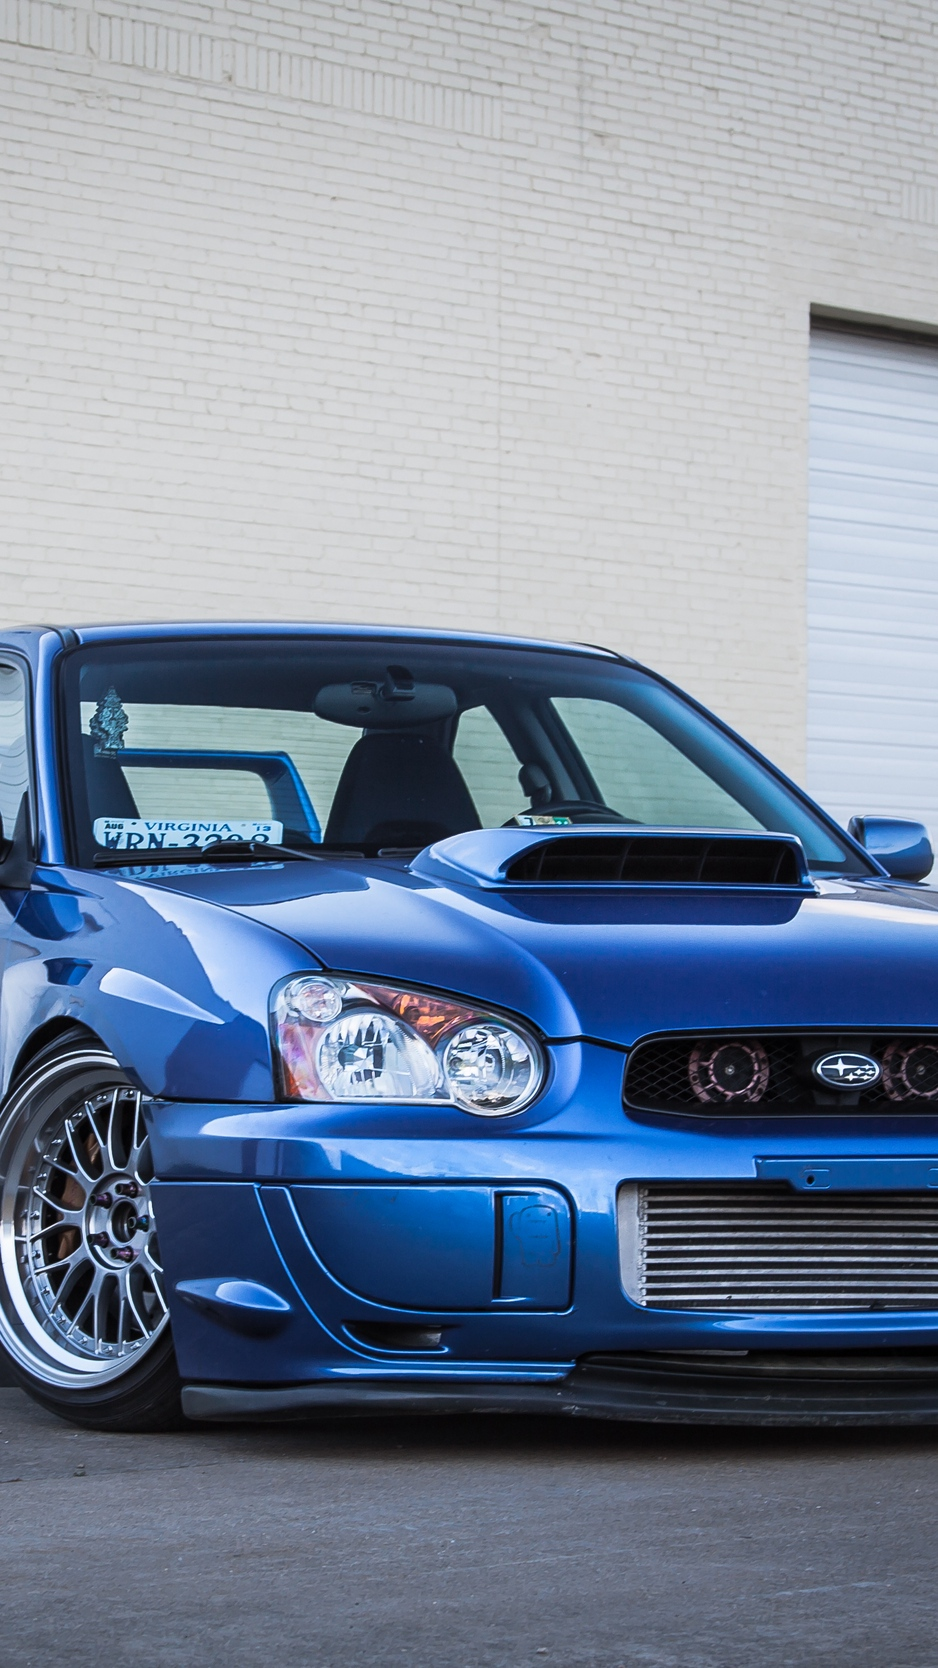 938x1668 - Wrx Sti iPhone 17